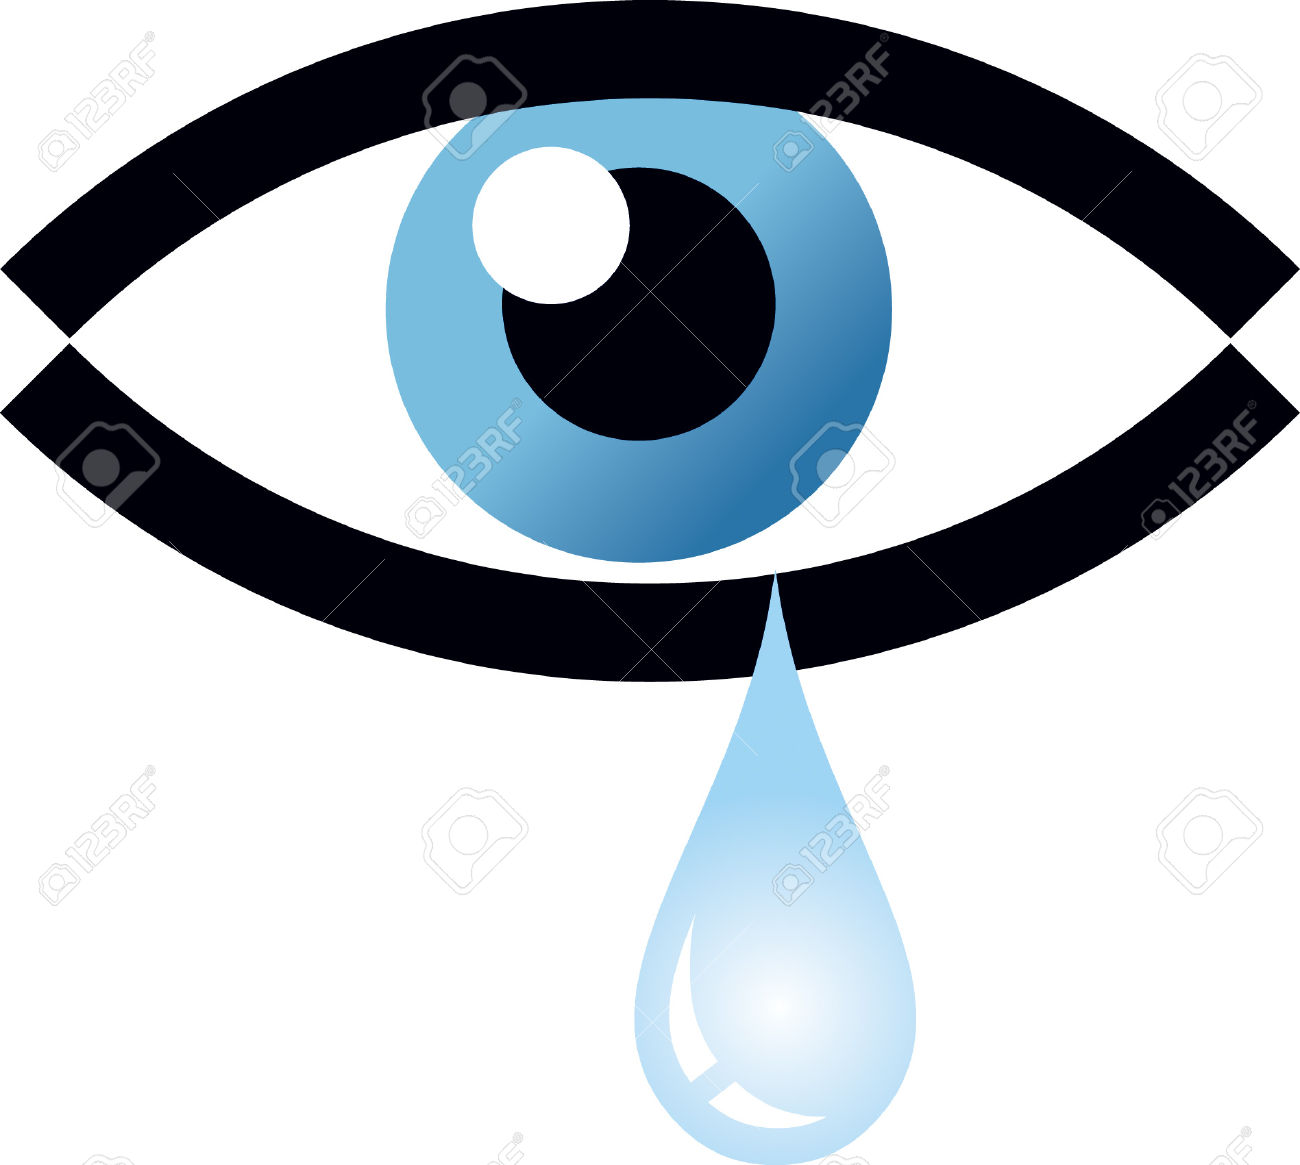 Eye Tear Royalty Free Cliparts, Vectors, And Stock Illustration.